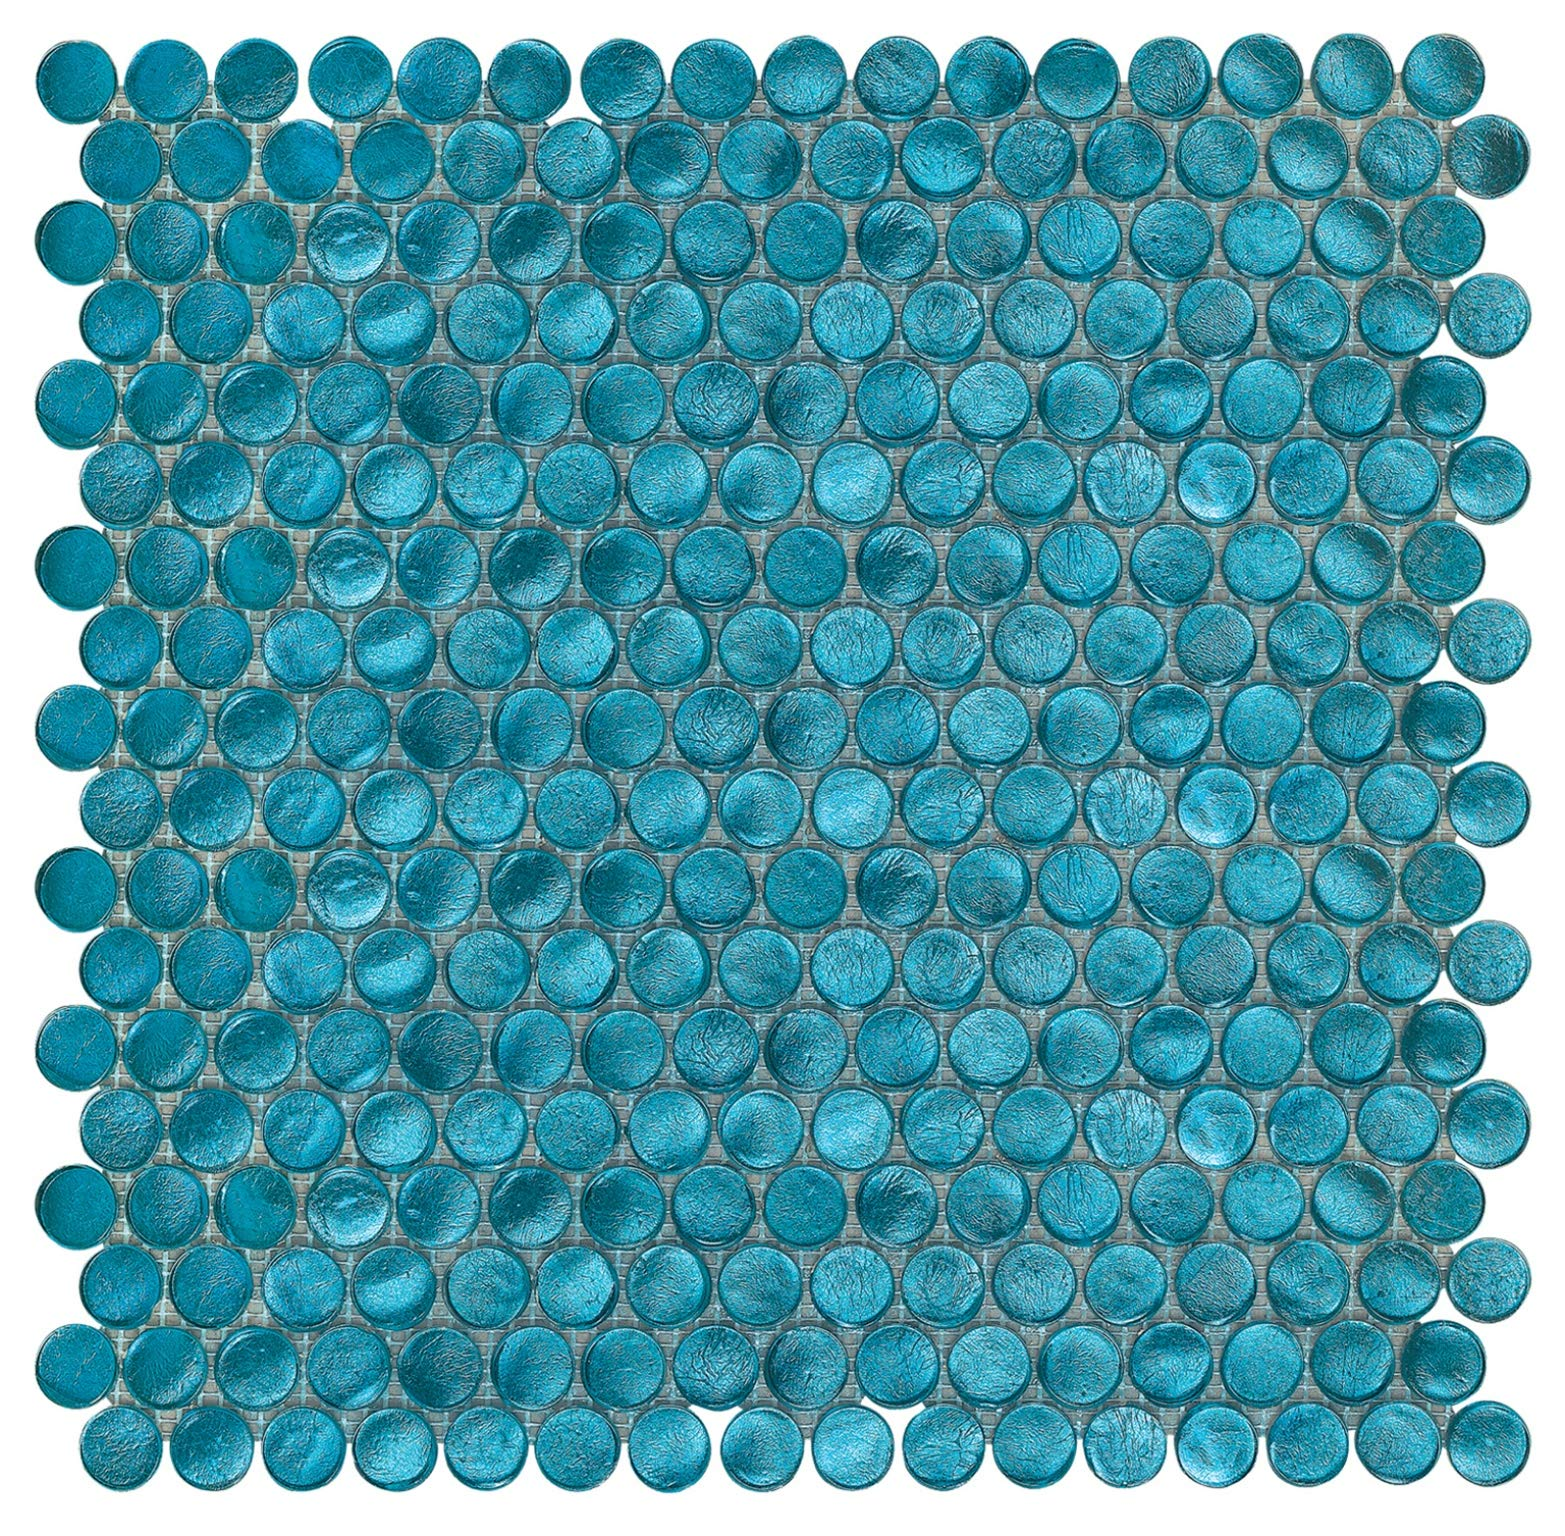 Aruba Turquoise Shimmer Penny Round Glass Mosaic